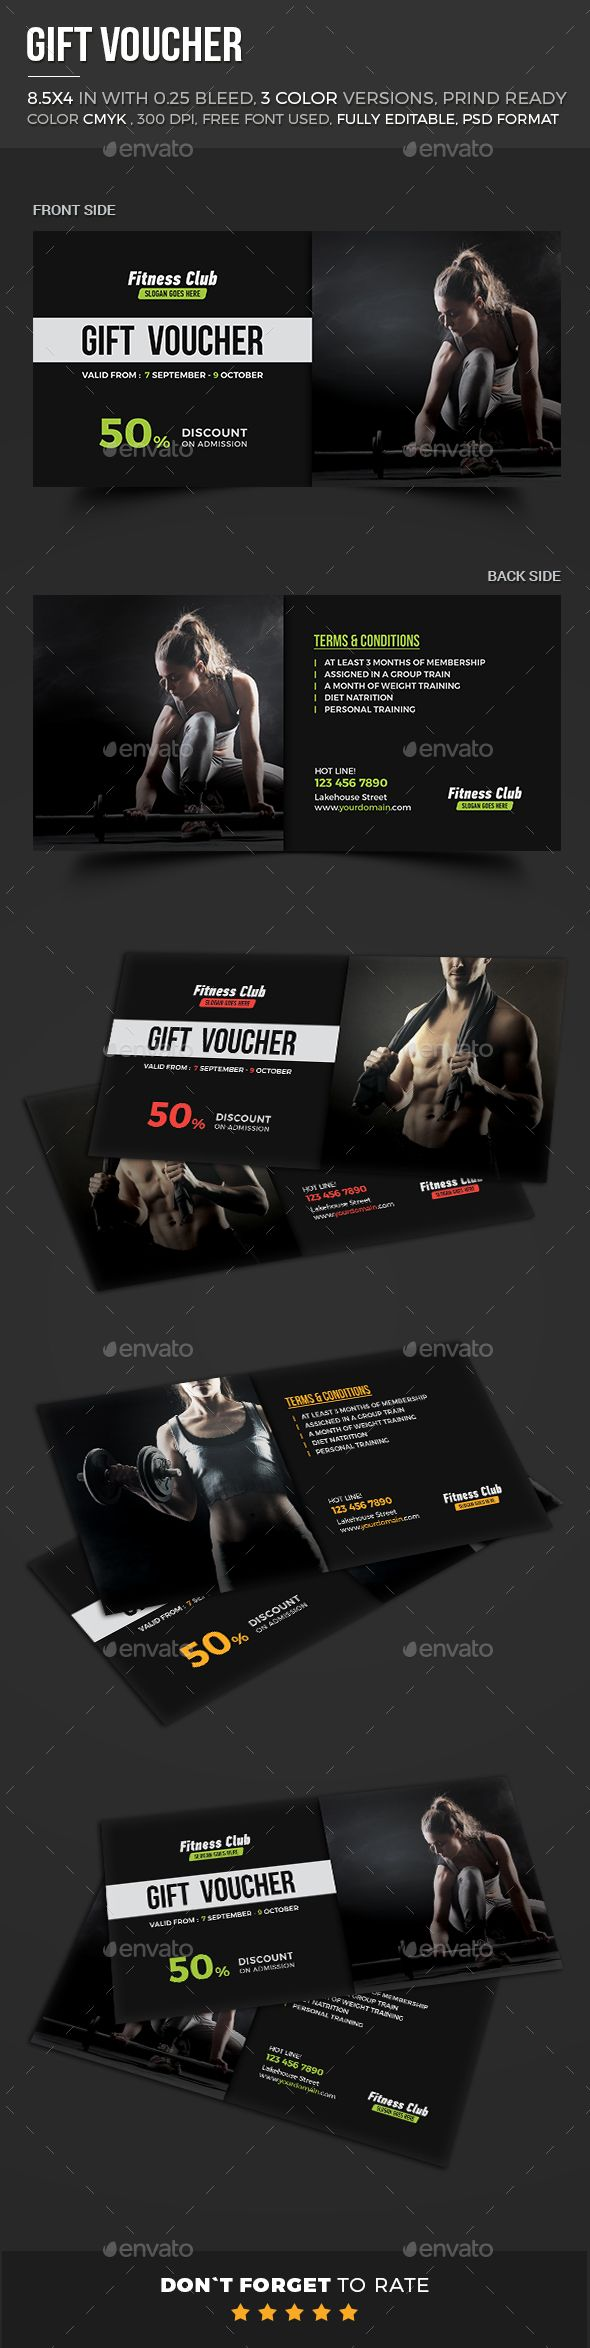 Fitness gift voucher loyalty cards cards invites instant fitness gift voucher loyalty cards cards invites instant download http free gift certificate templategift yadclub Gallery